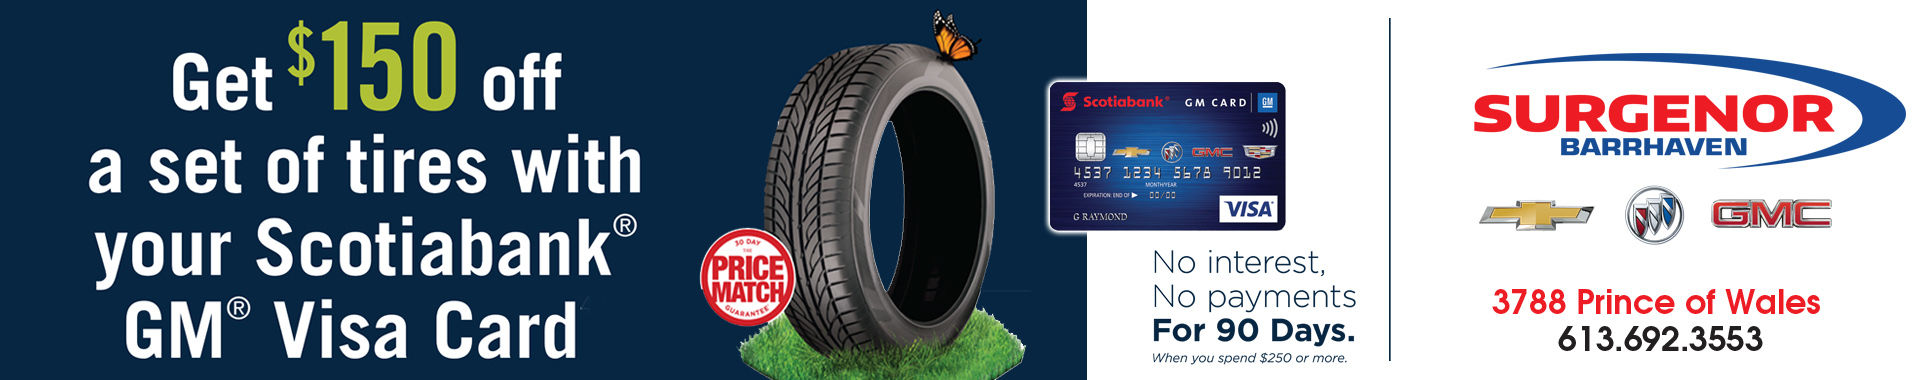 Get 150$ off a set of tires with your scotia bank visa card.